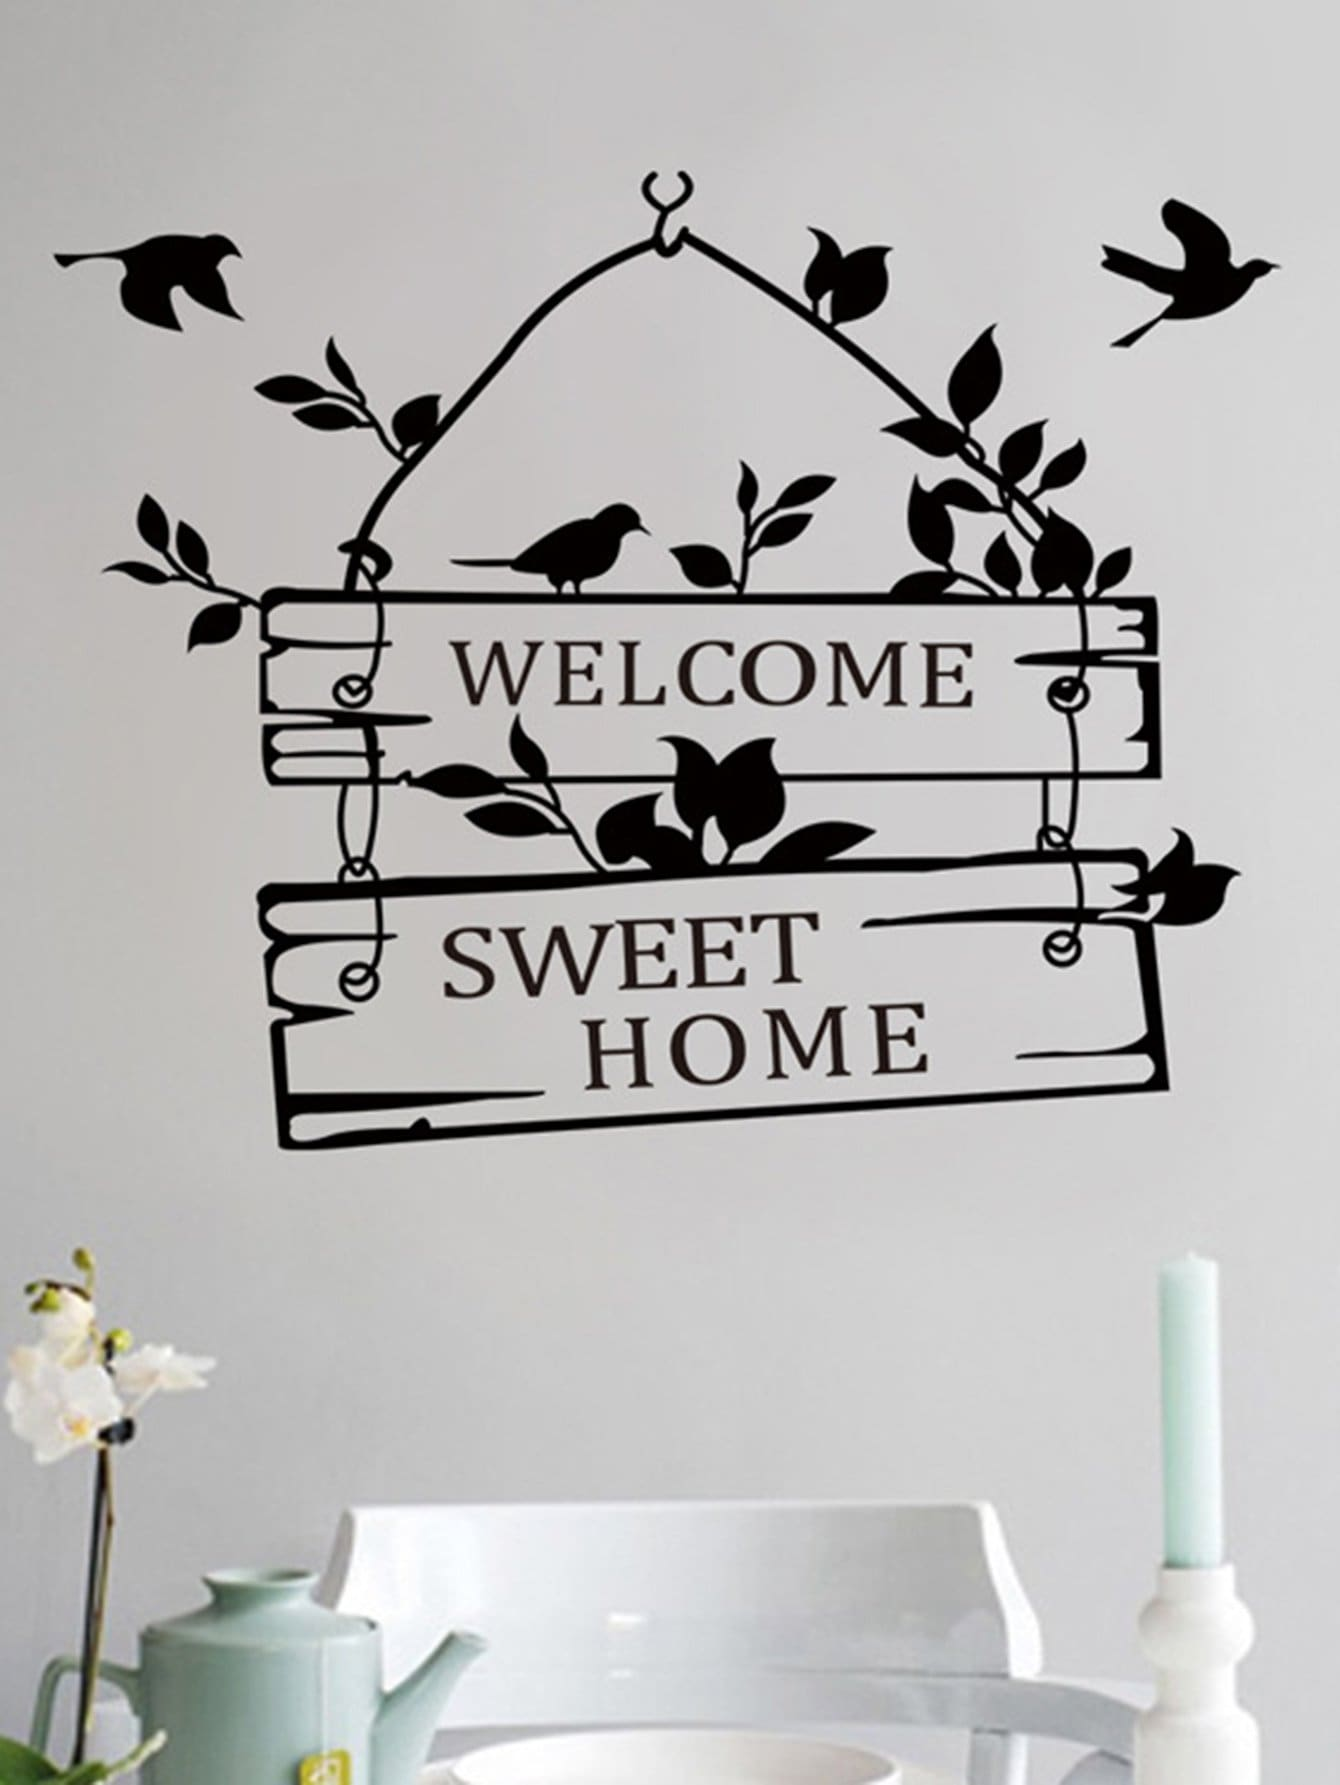 Welcome Sign Wall Decal corona parrot palm tree extra neon light sign real glass tube handcraft custom logo neon bulbs recreation room wall sign vd19x15